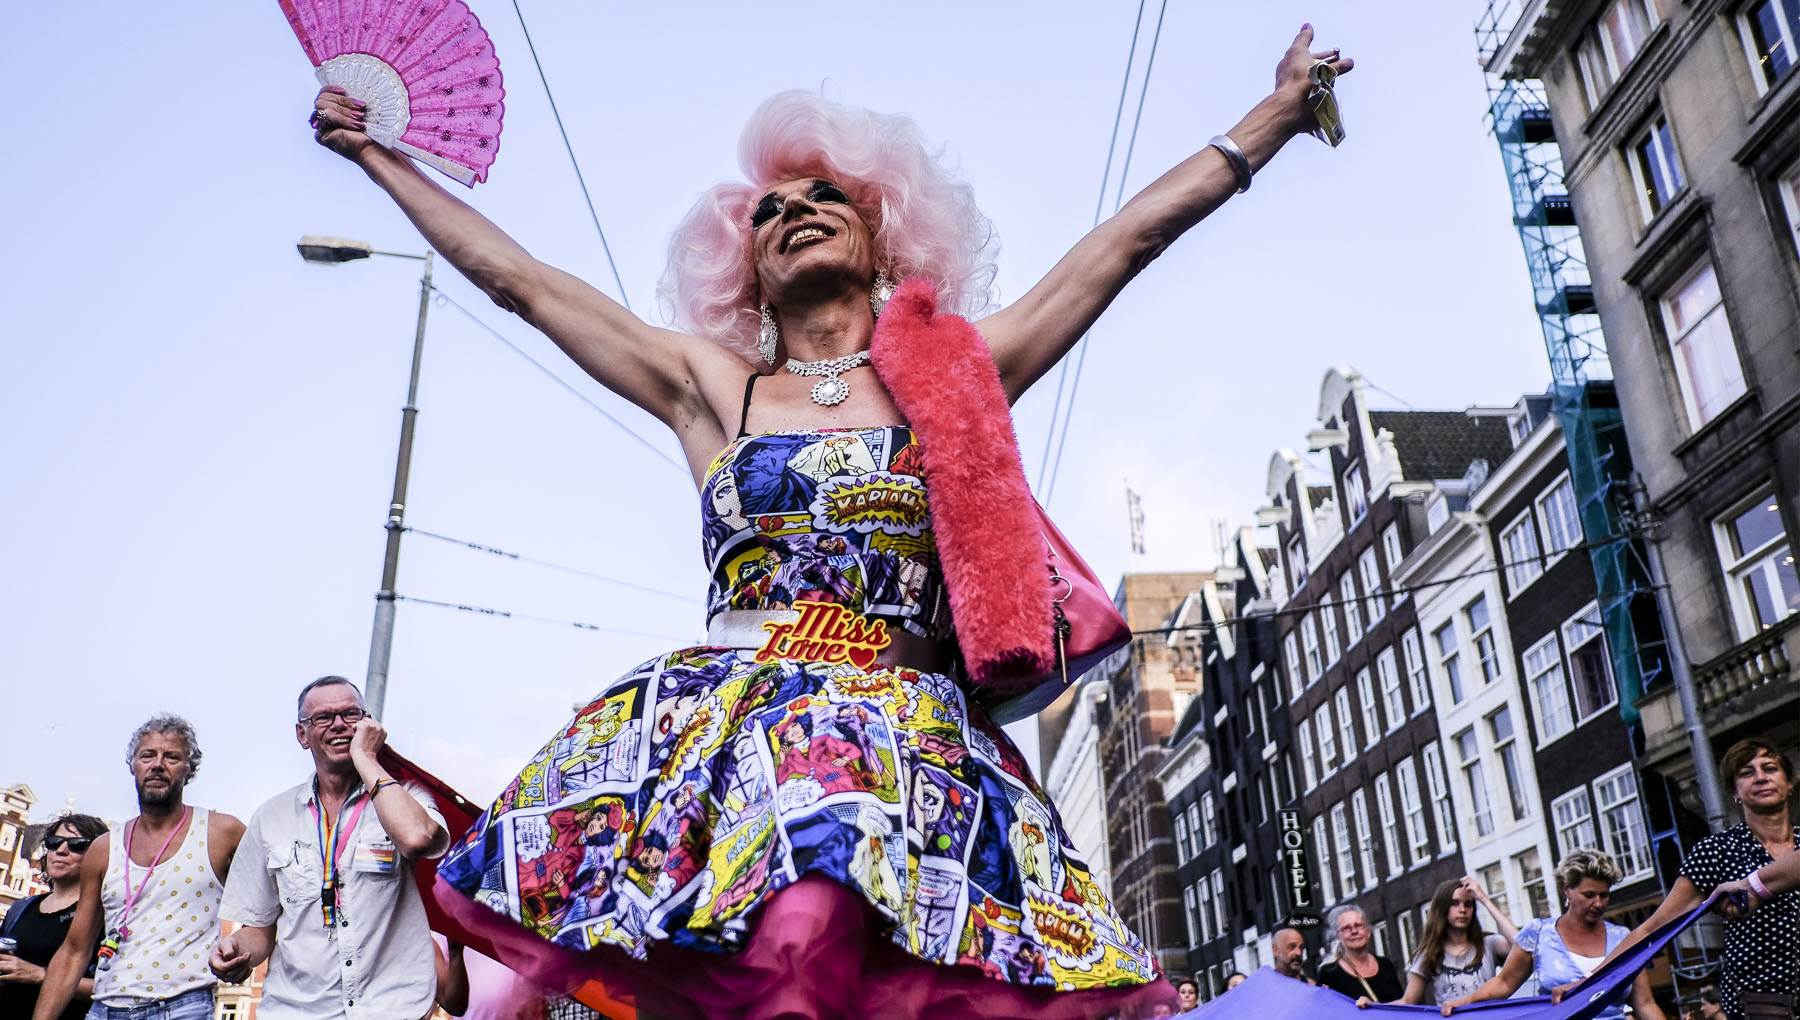 The Best Introduction To Gay Nightlife In Amsterdam